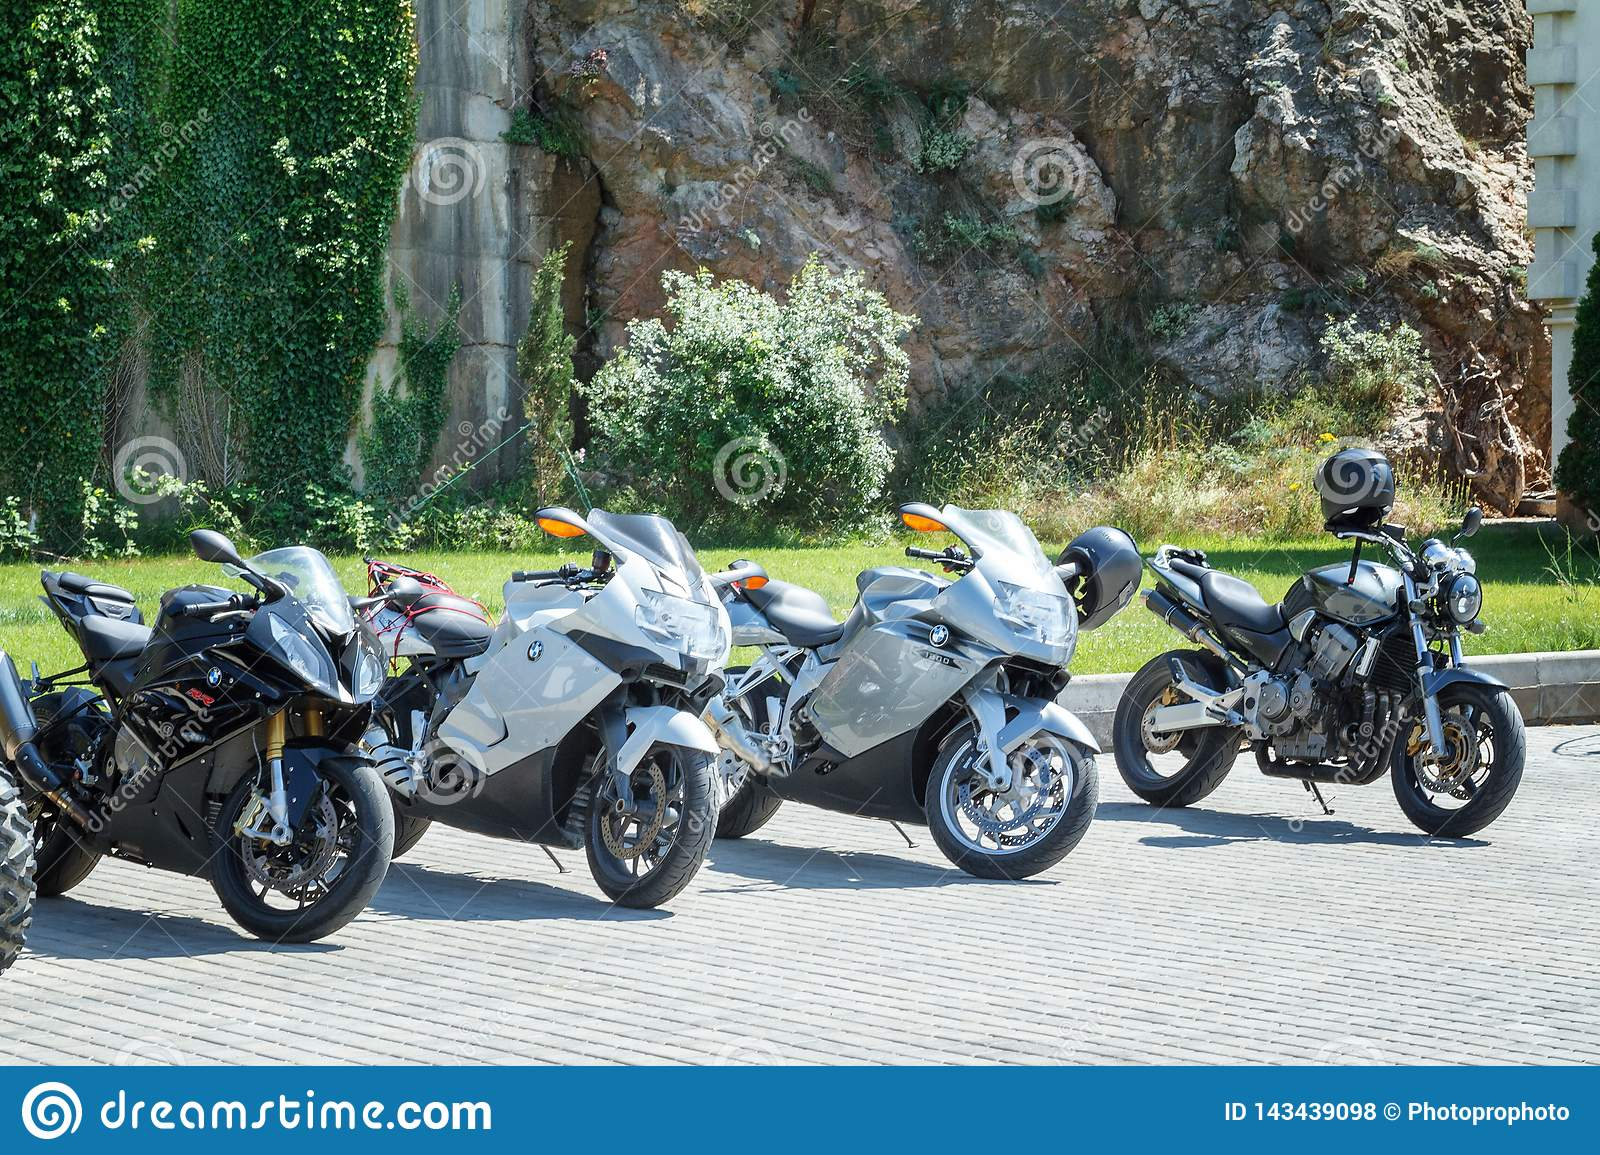 BMW motorcycles are on the waterfront against the rock, July 9, 2018 embankment in Balaklava